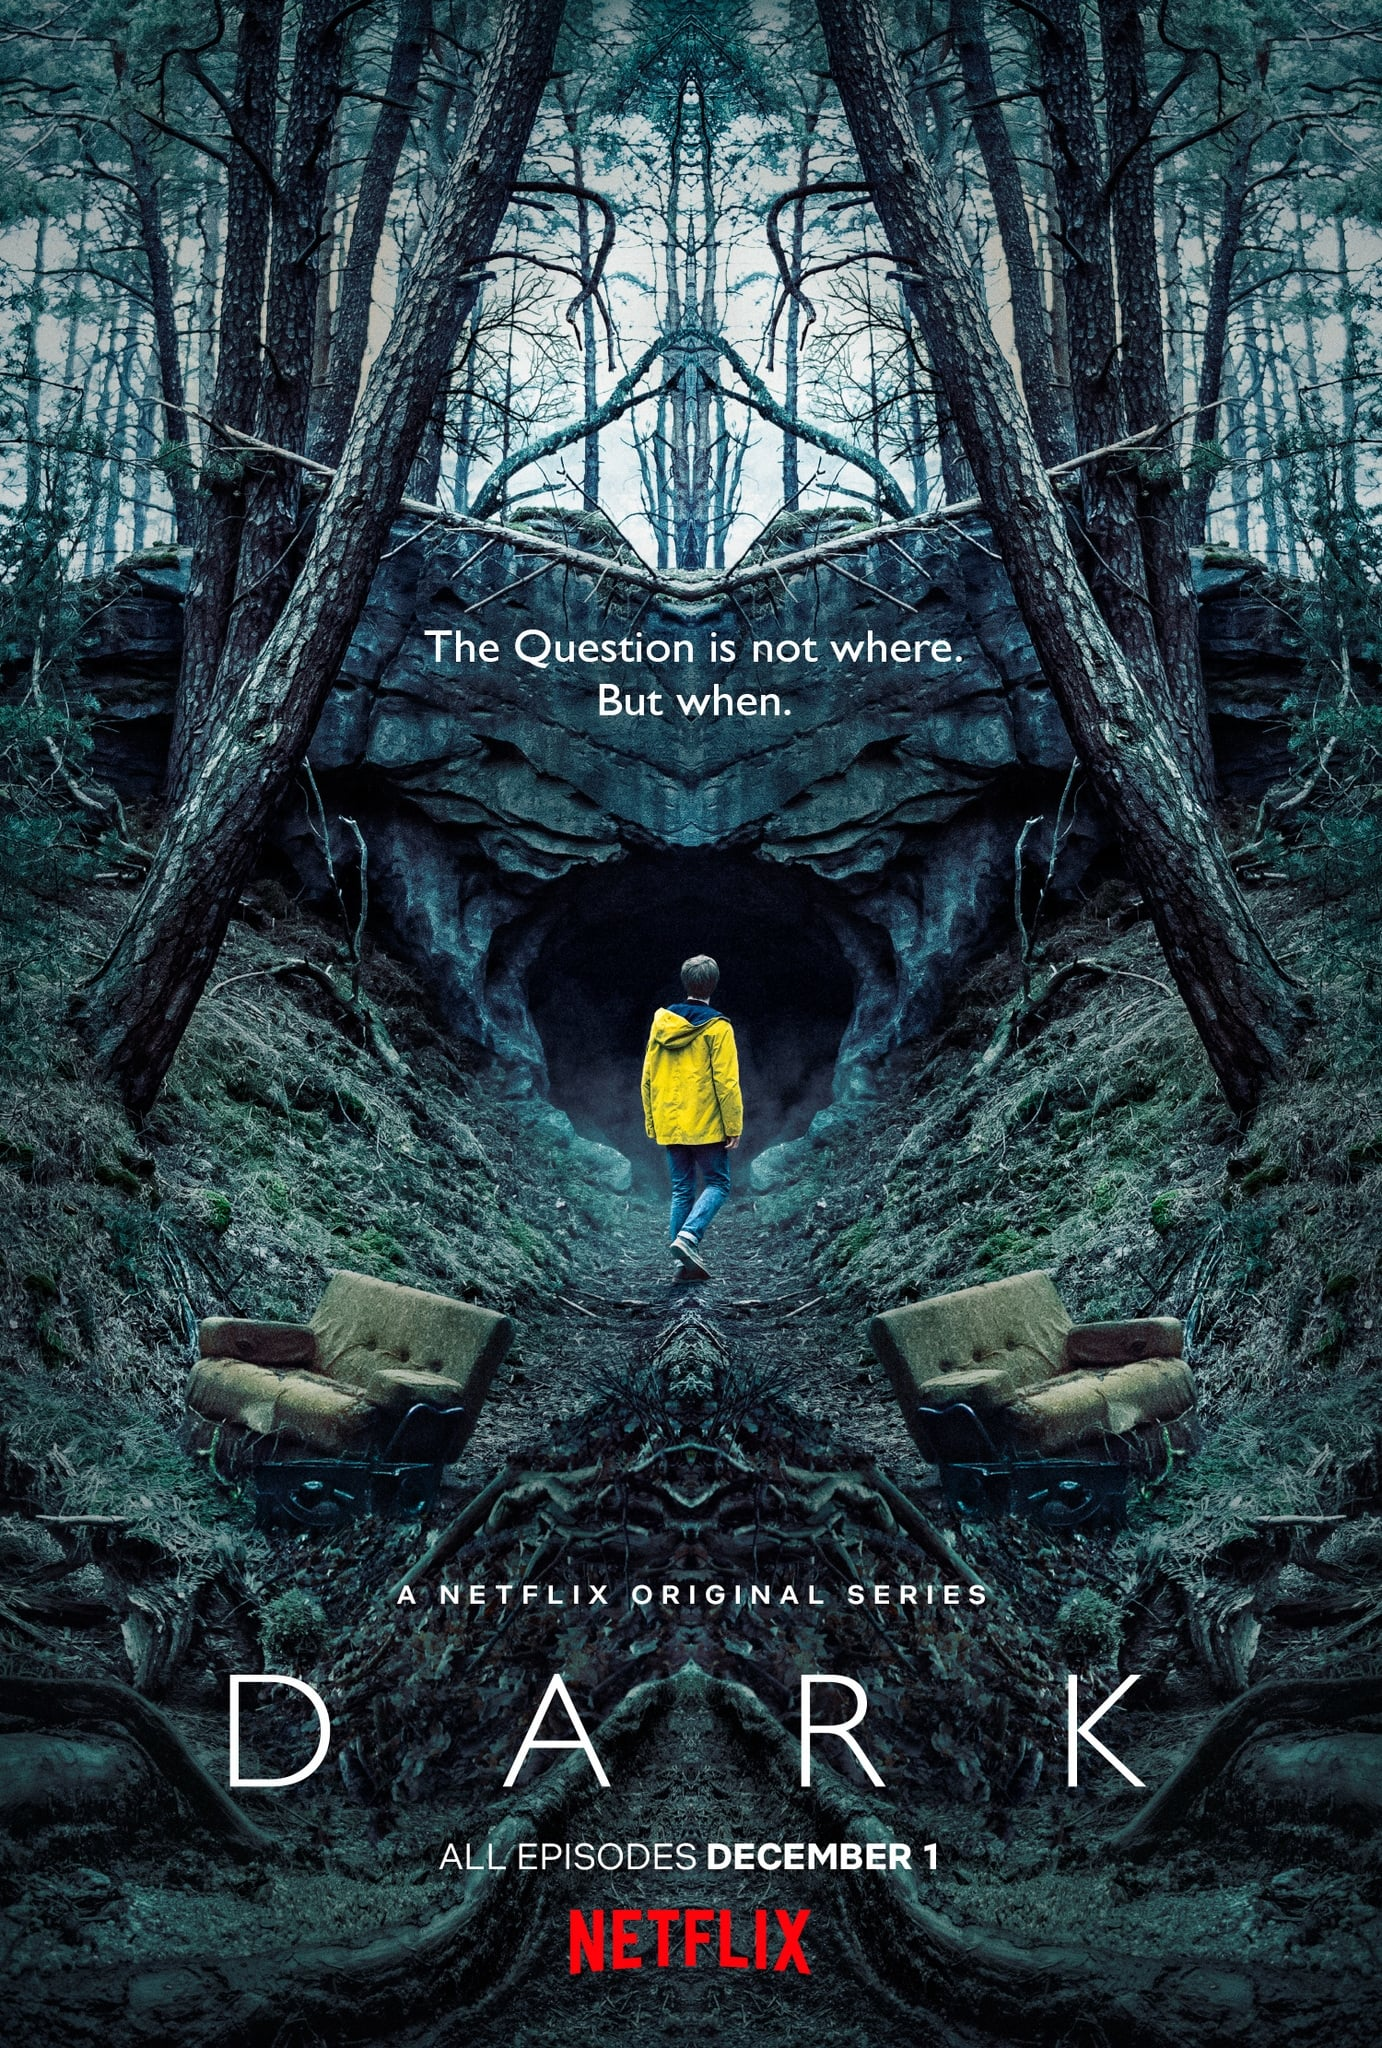 Dark S01 (2017) [German+English] | x265 HEVC 10Bit WEB-Rip 720p 2.6GB Download